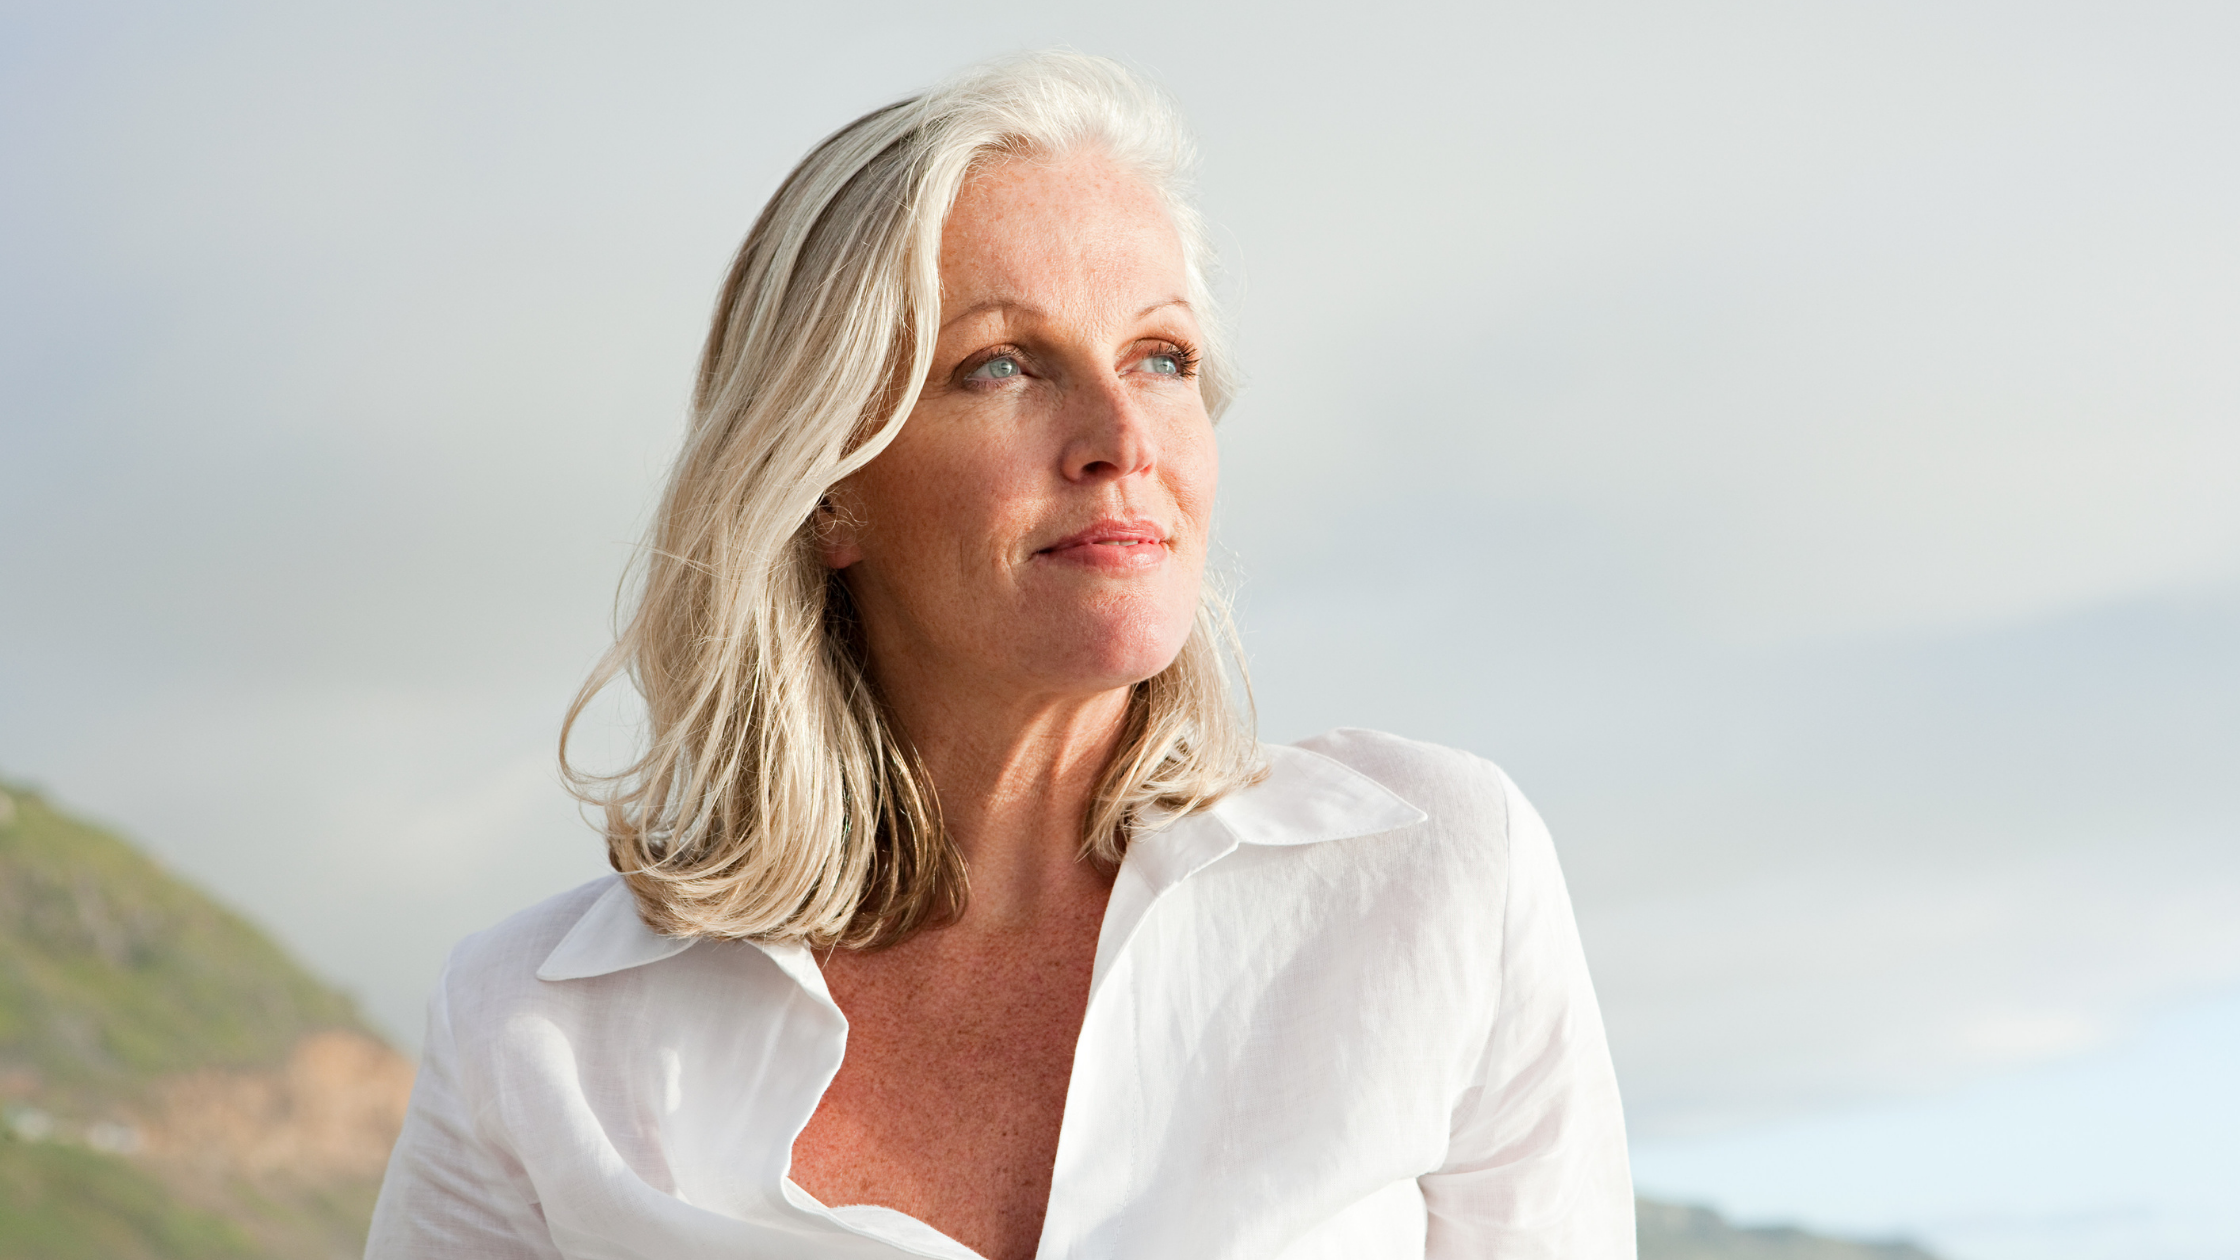 5 Steps to Dating in Your 50's